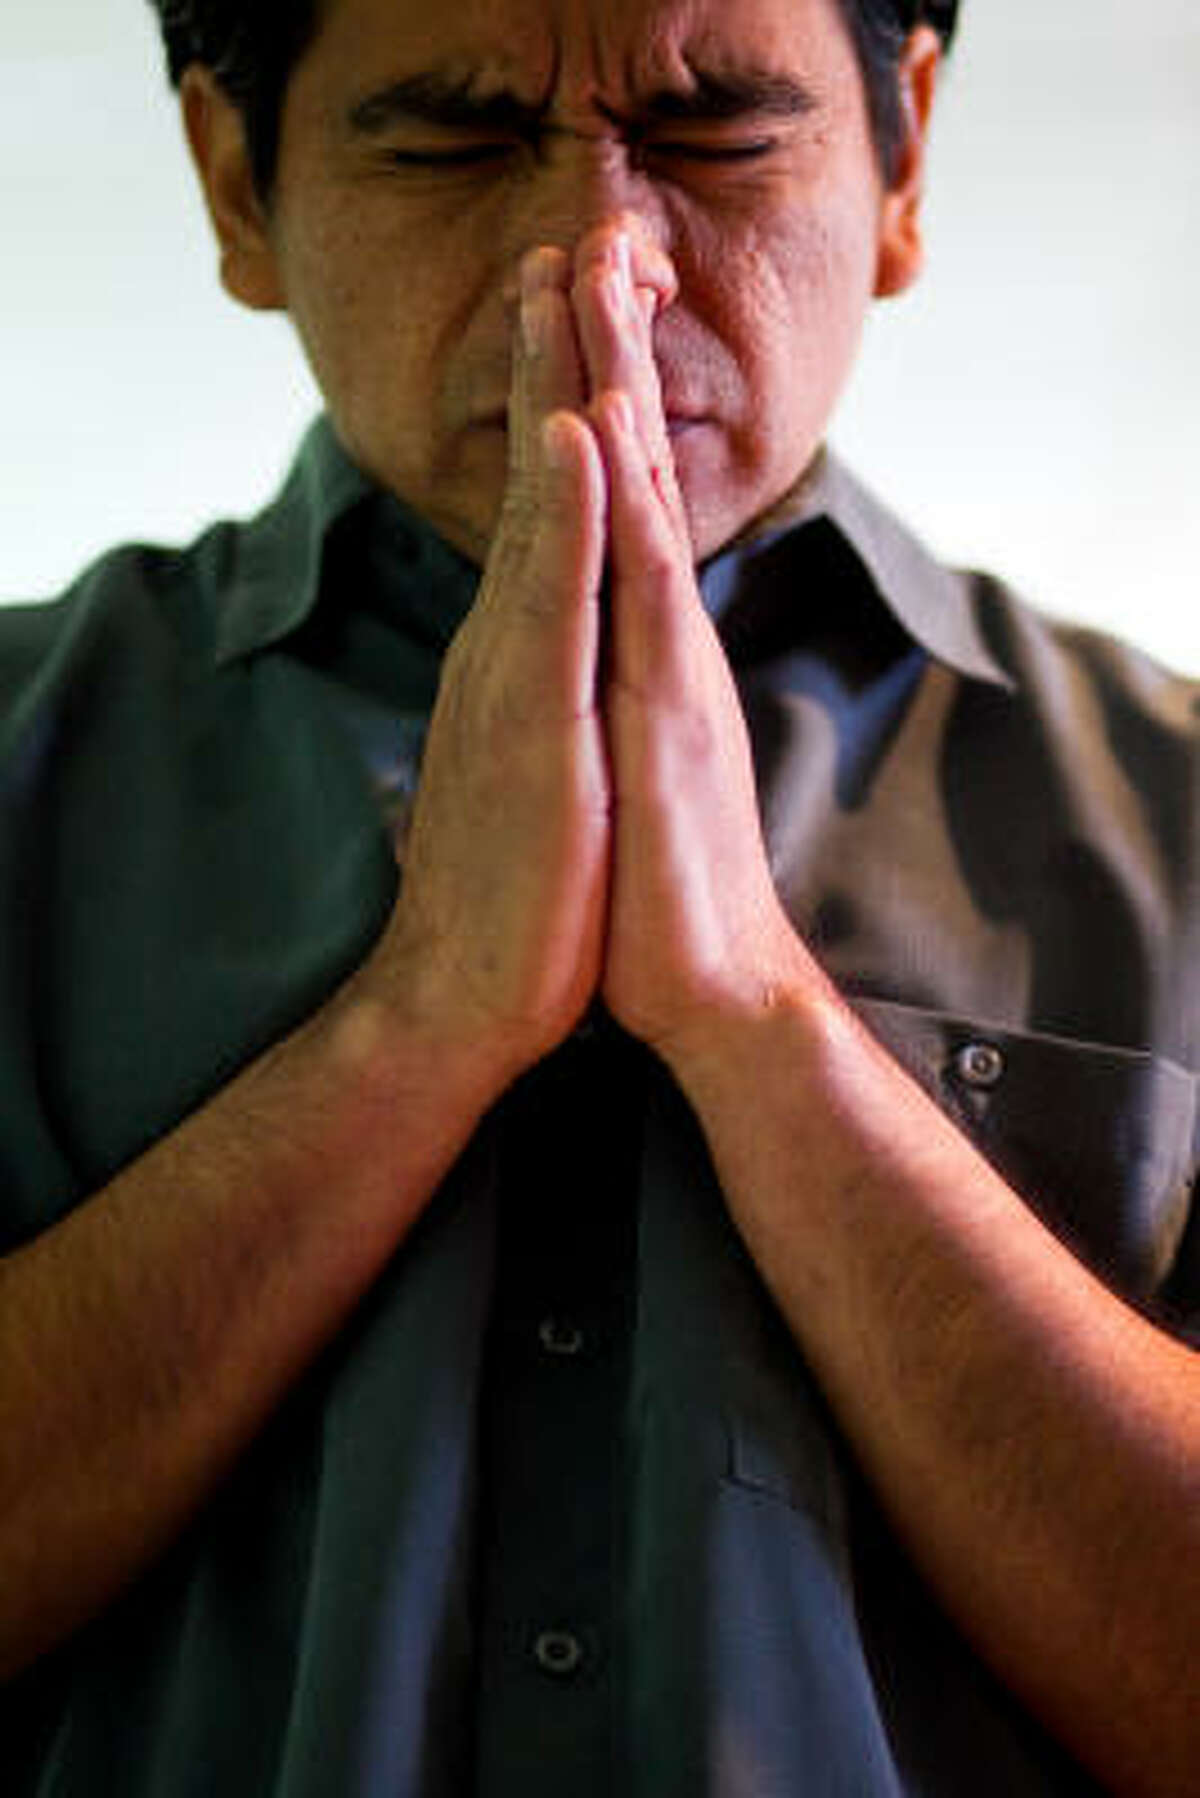 Ruta 14:6 pastor Mauricio Saravia puts his hands together as he listens to a sermon during a service in Houston.